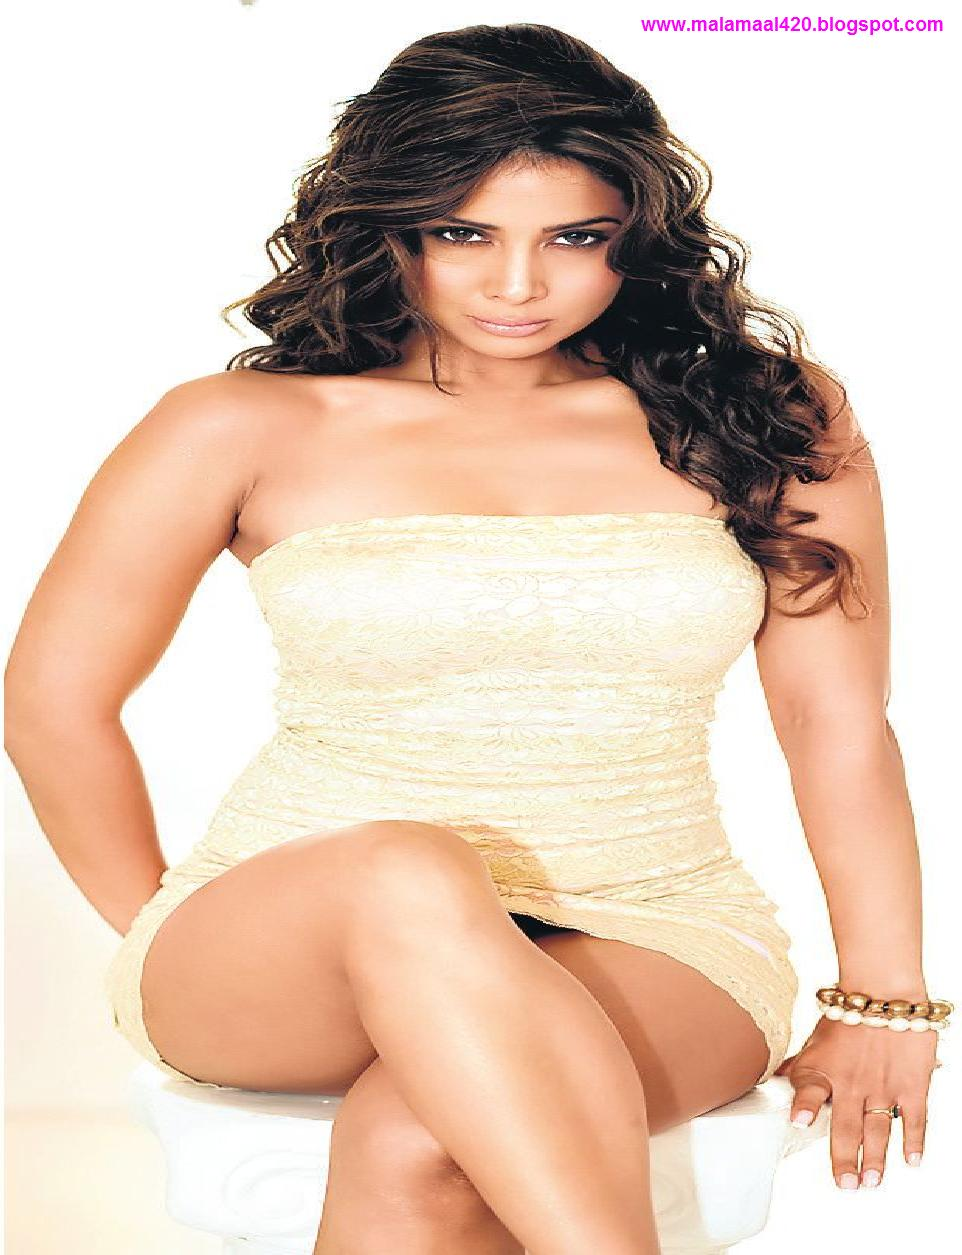 kim sharma hot nude